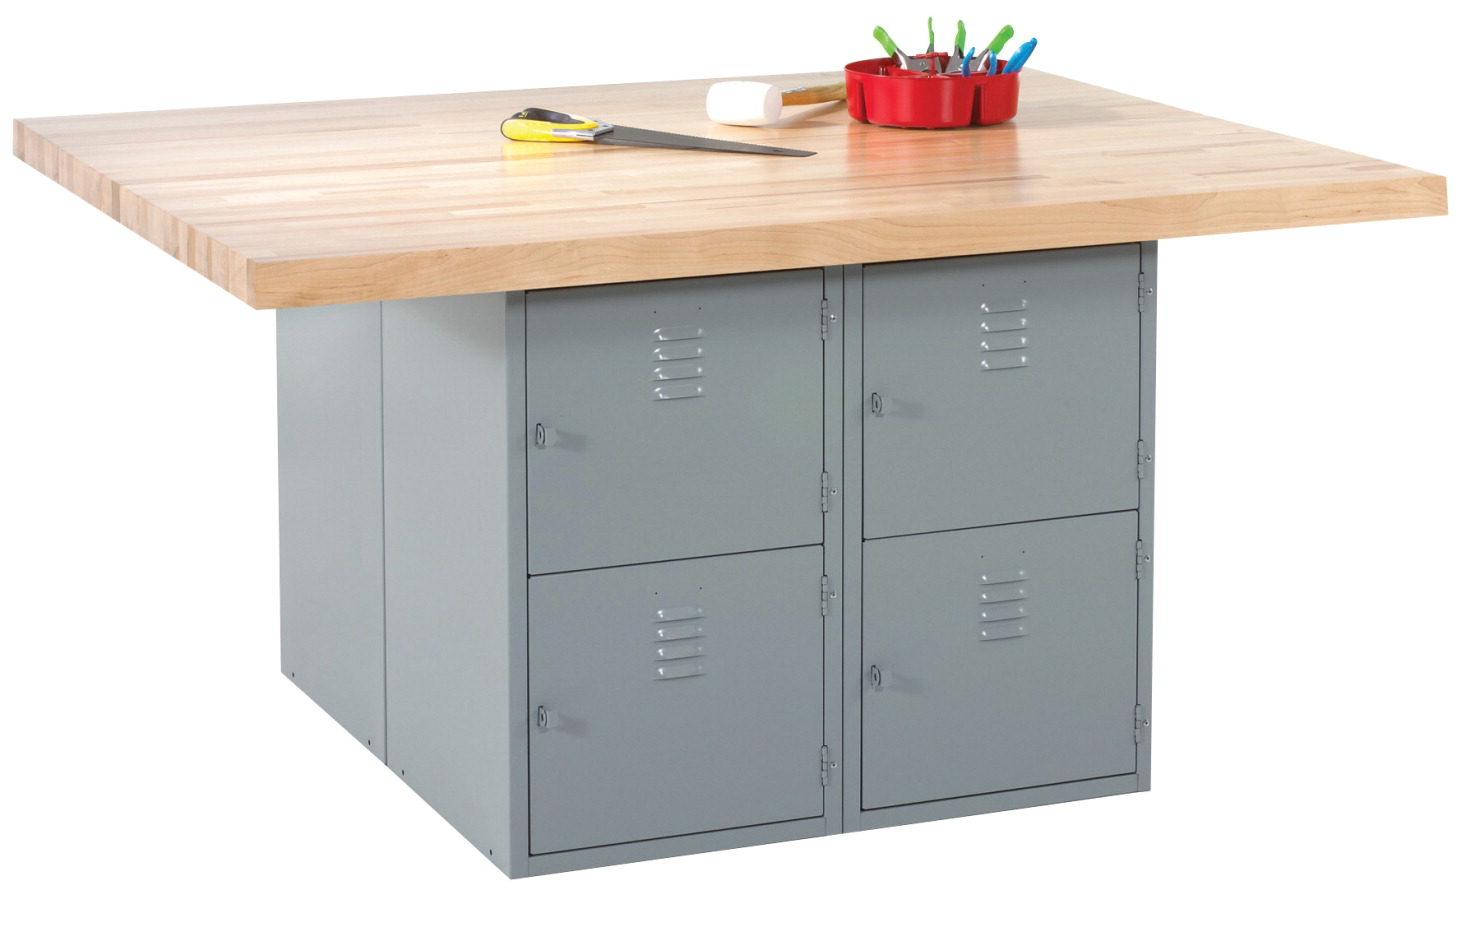 Diversified Woodcrafts 4 Station 8 Locker Workbench with 4 Vises, 64 x 54 x 33-1/4 Inches, Various Options